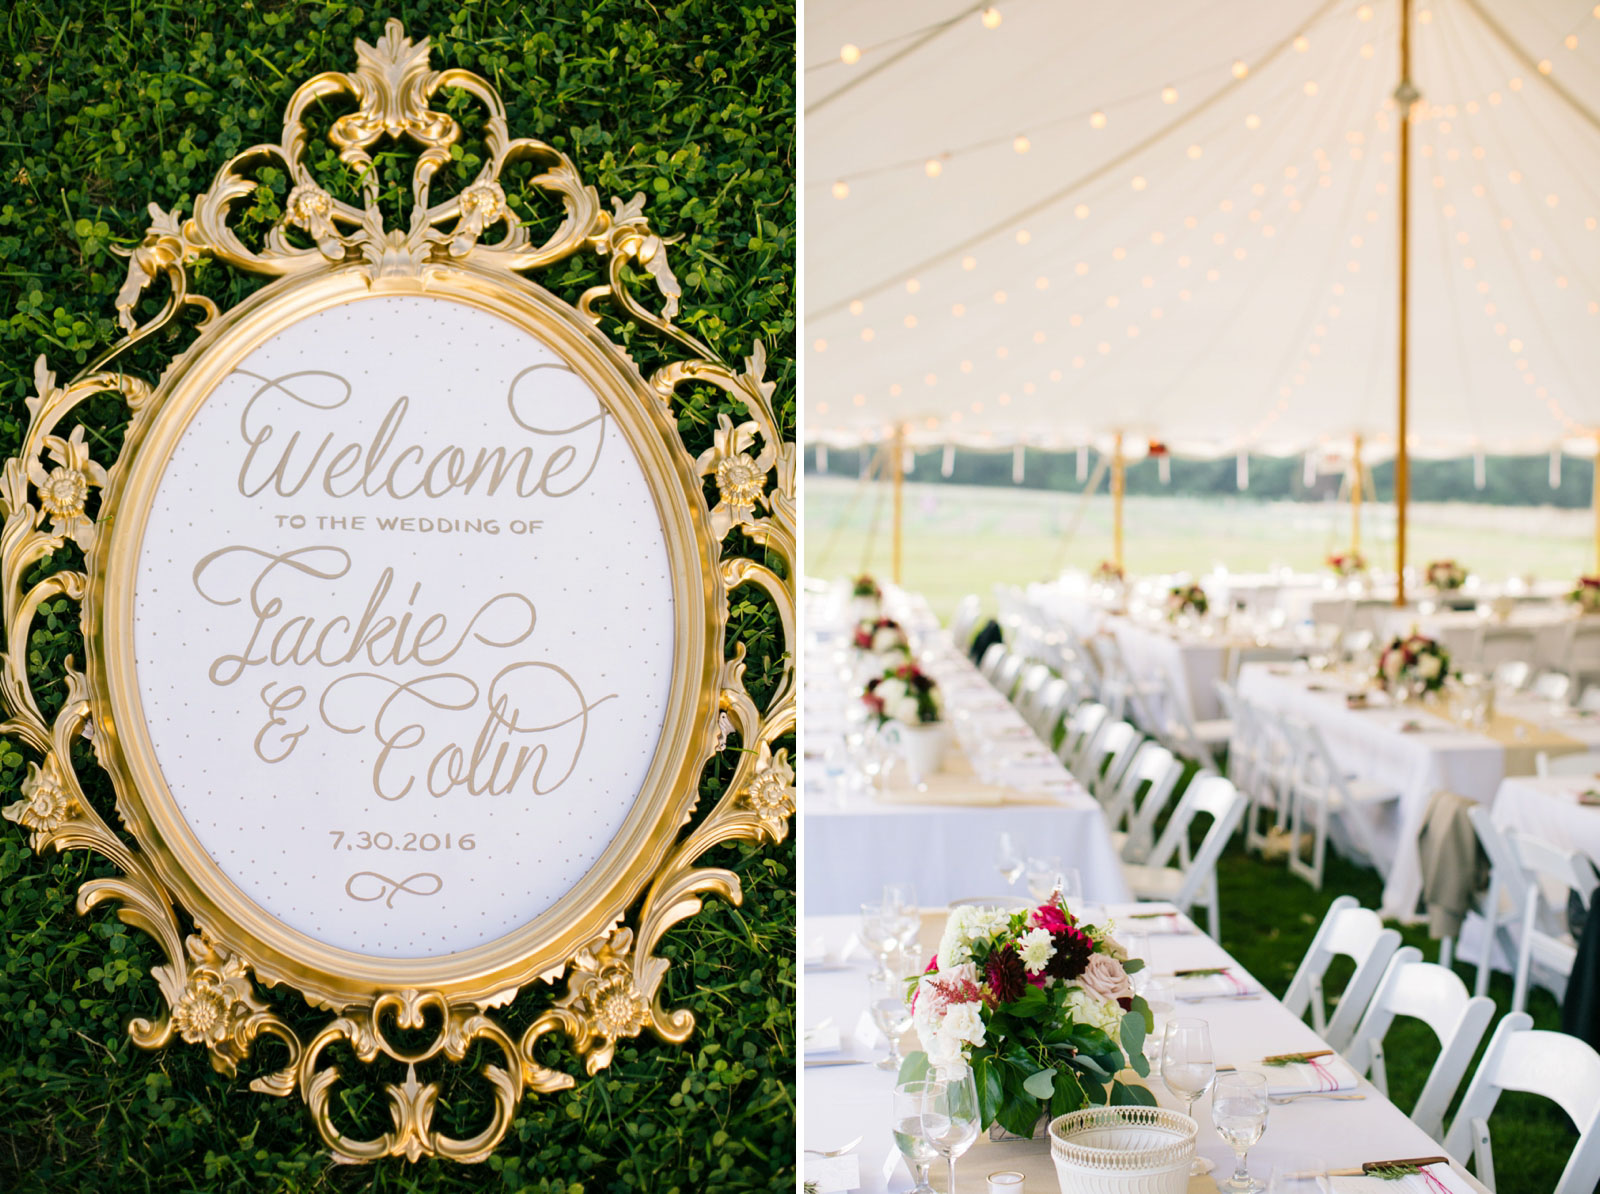 Antique frame with welcome to the wedding of Jackie and Colin 7.30.2016, tented wedding reception